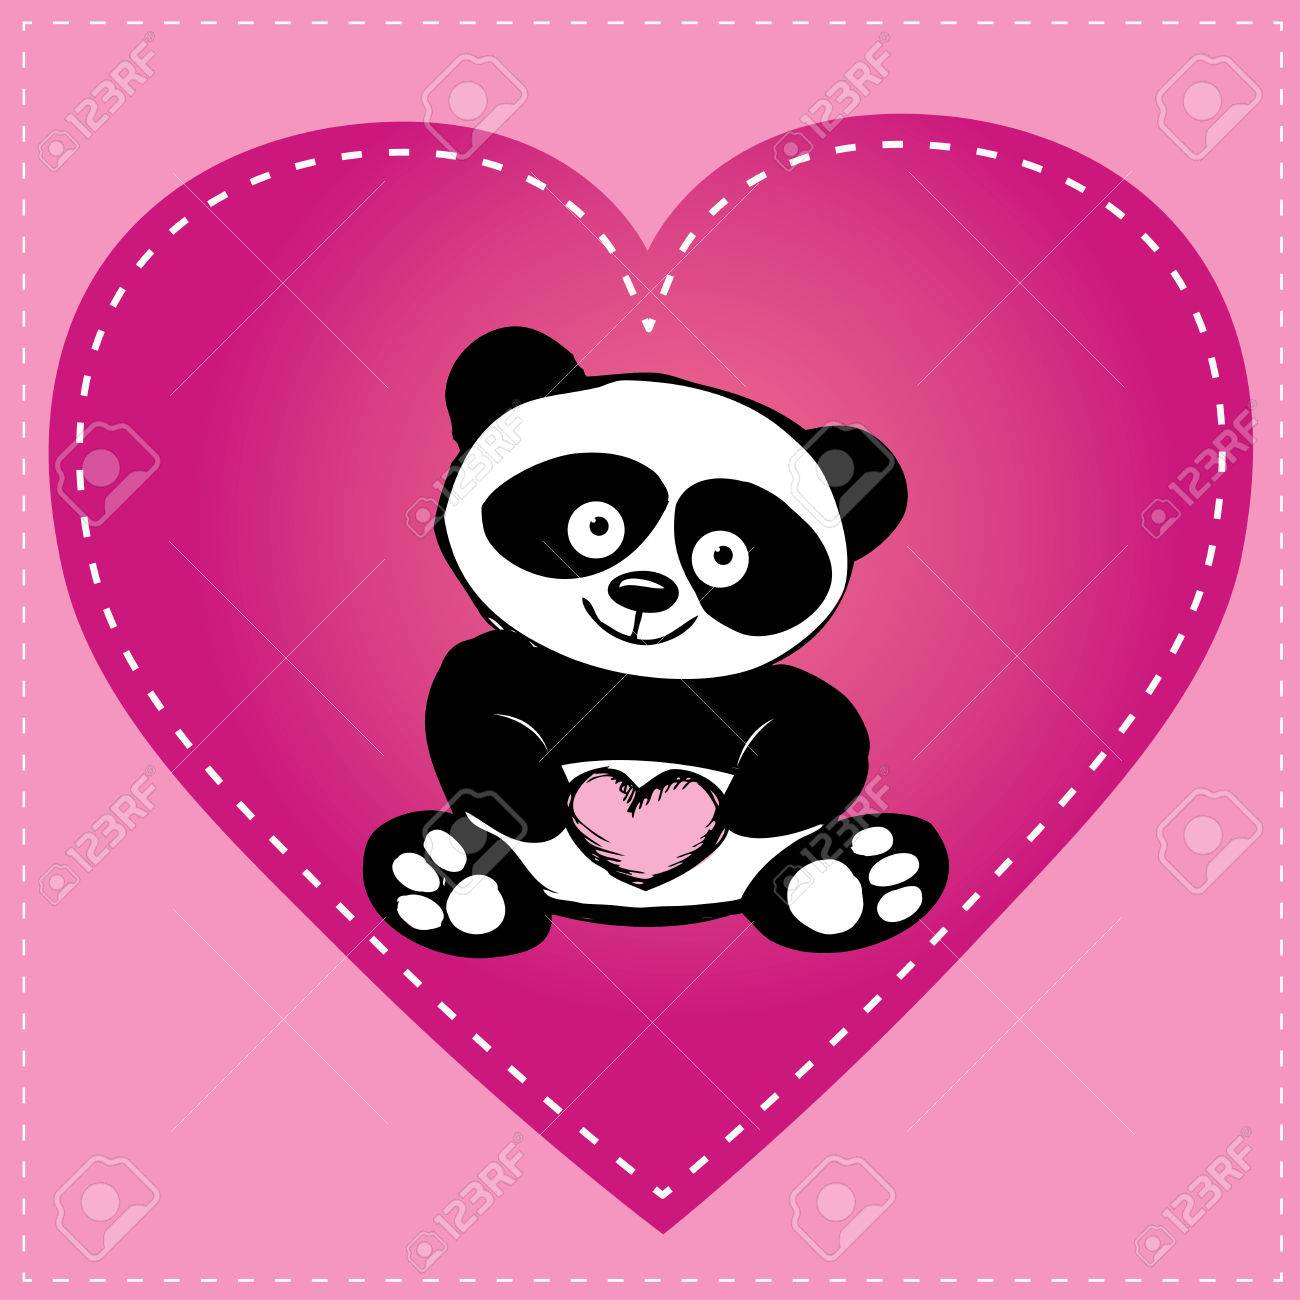 1300x1300 Little Cute Panda In Heart, Hand Drawing, Vector Royalty Free